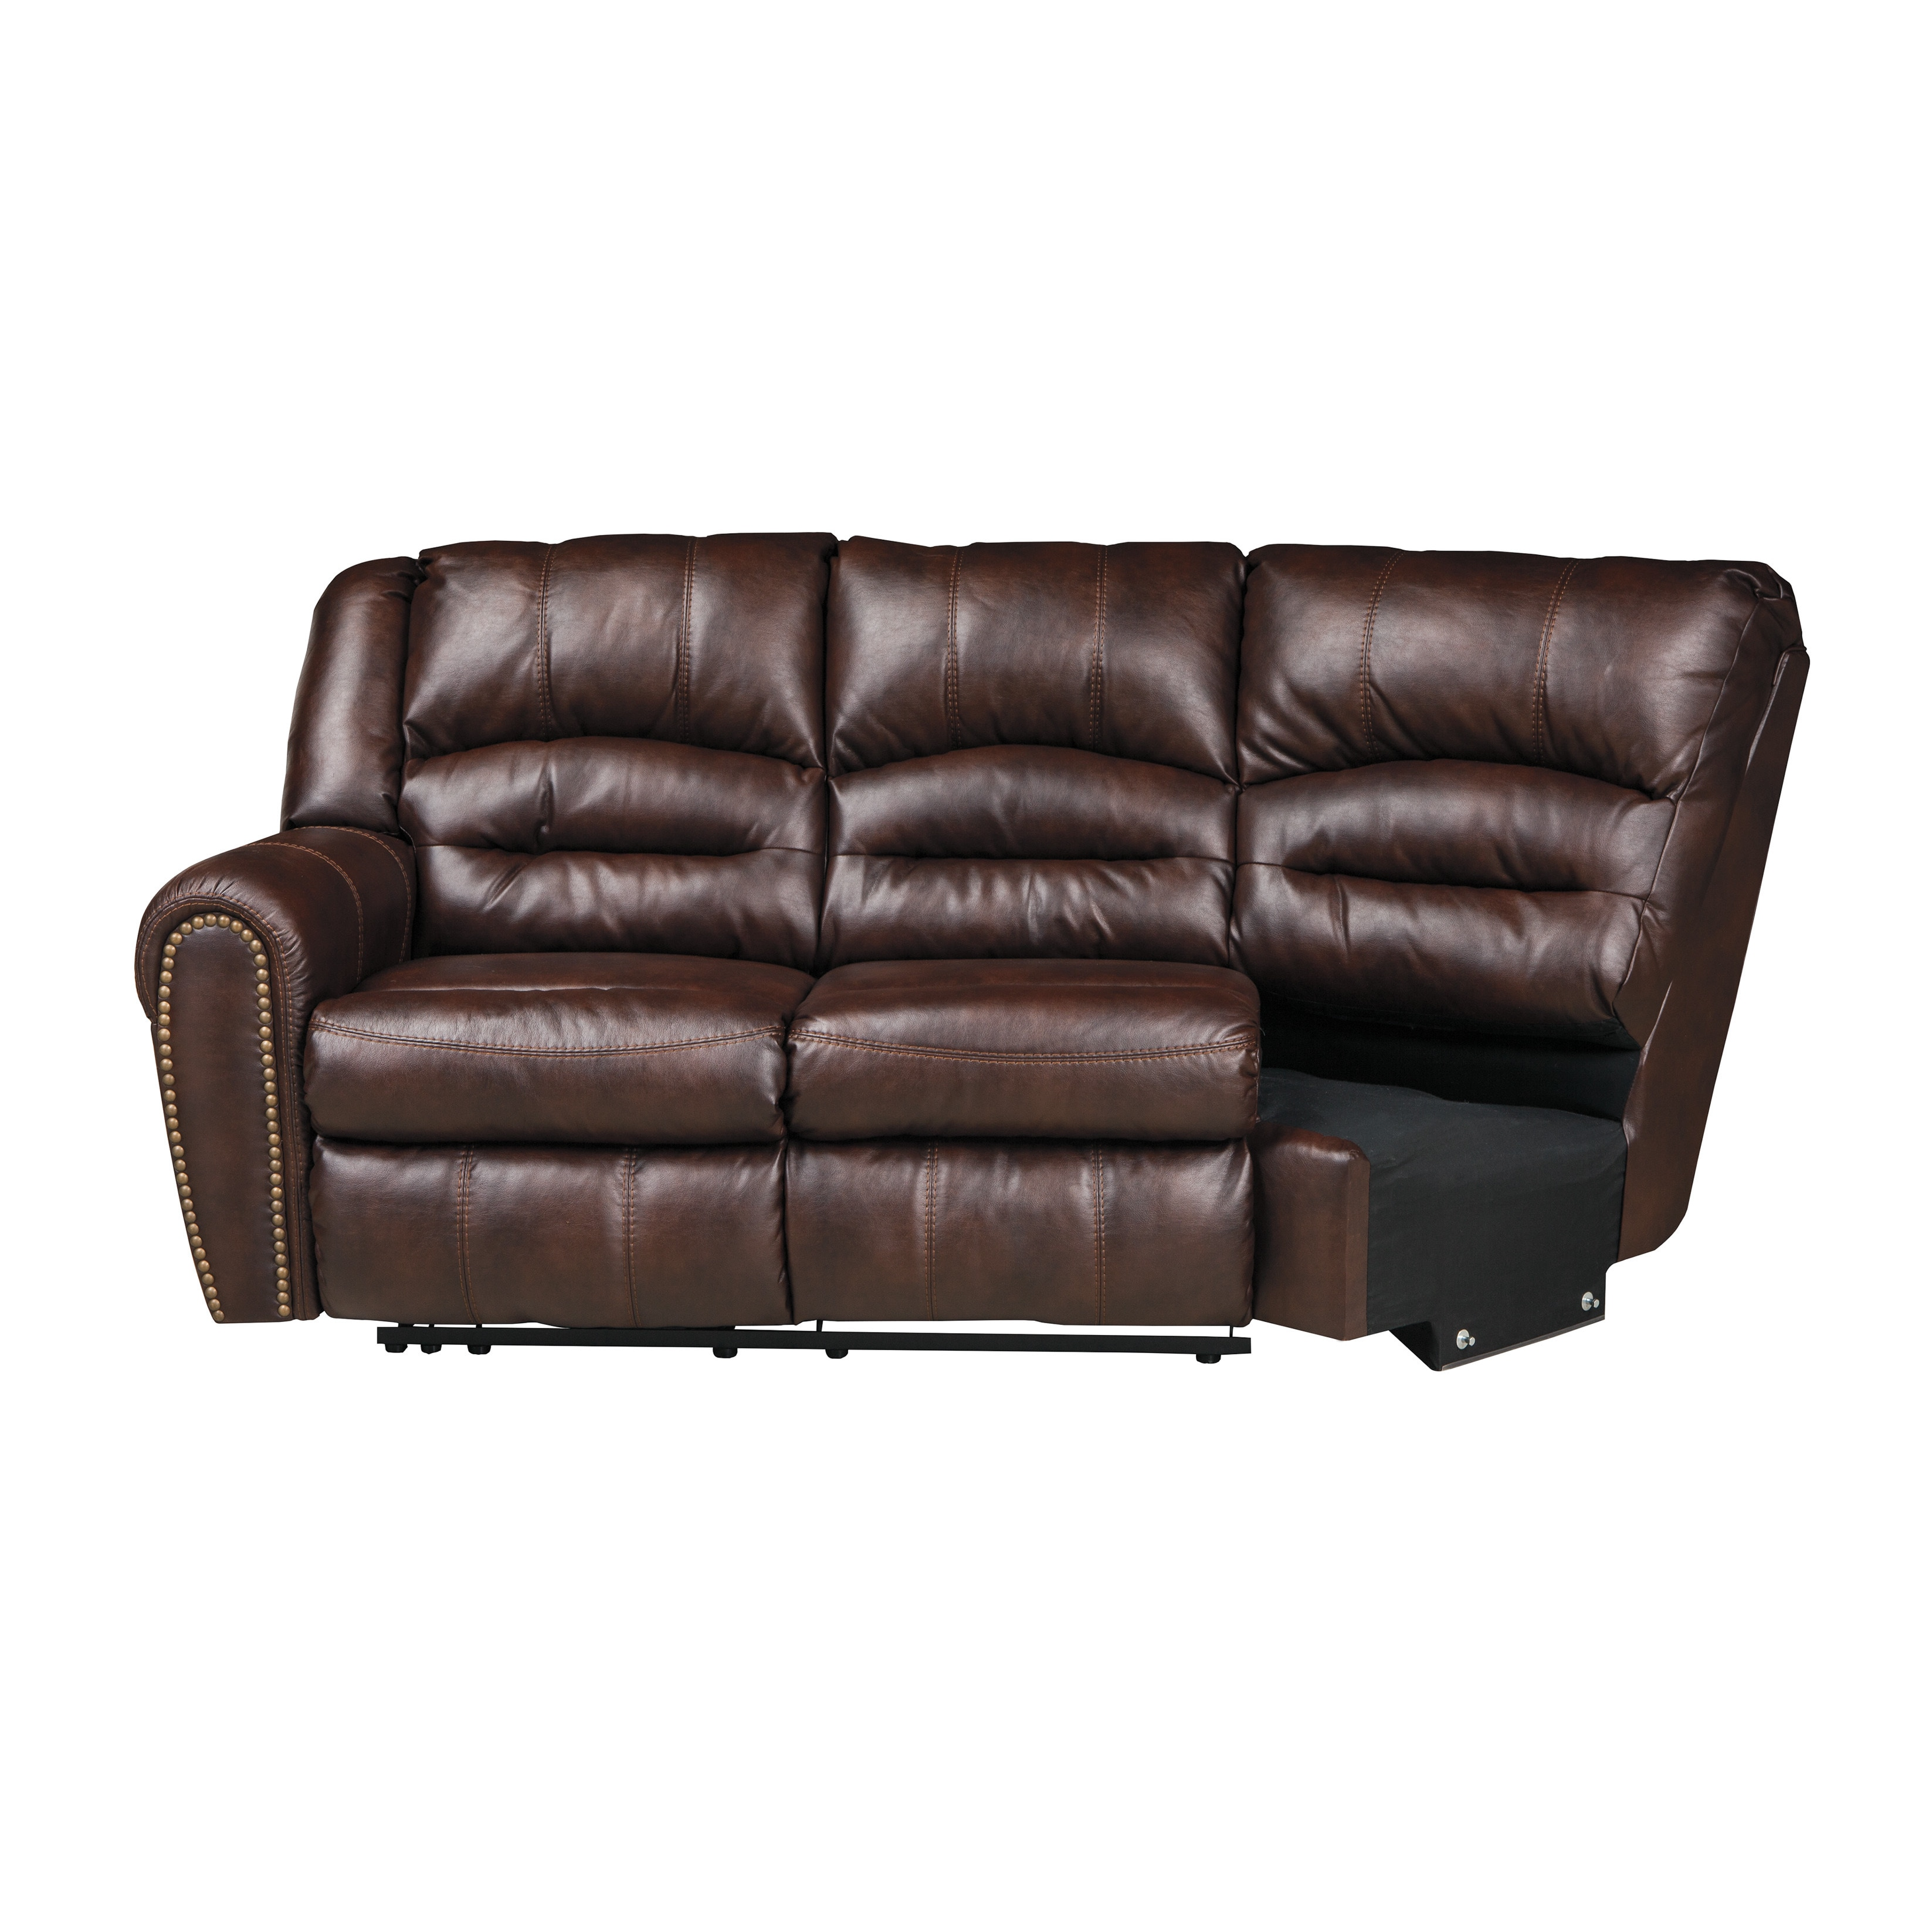 Shop Signature Designs By Ashley Manzanola Chocolate Reclining Loveseat  Combo   Free Shipping Today   Overstock.com   10066521